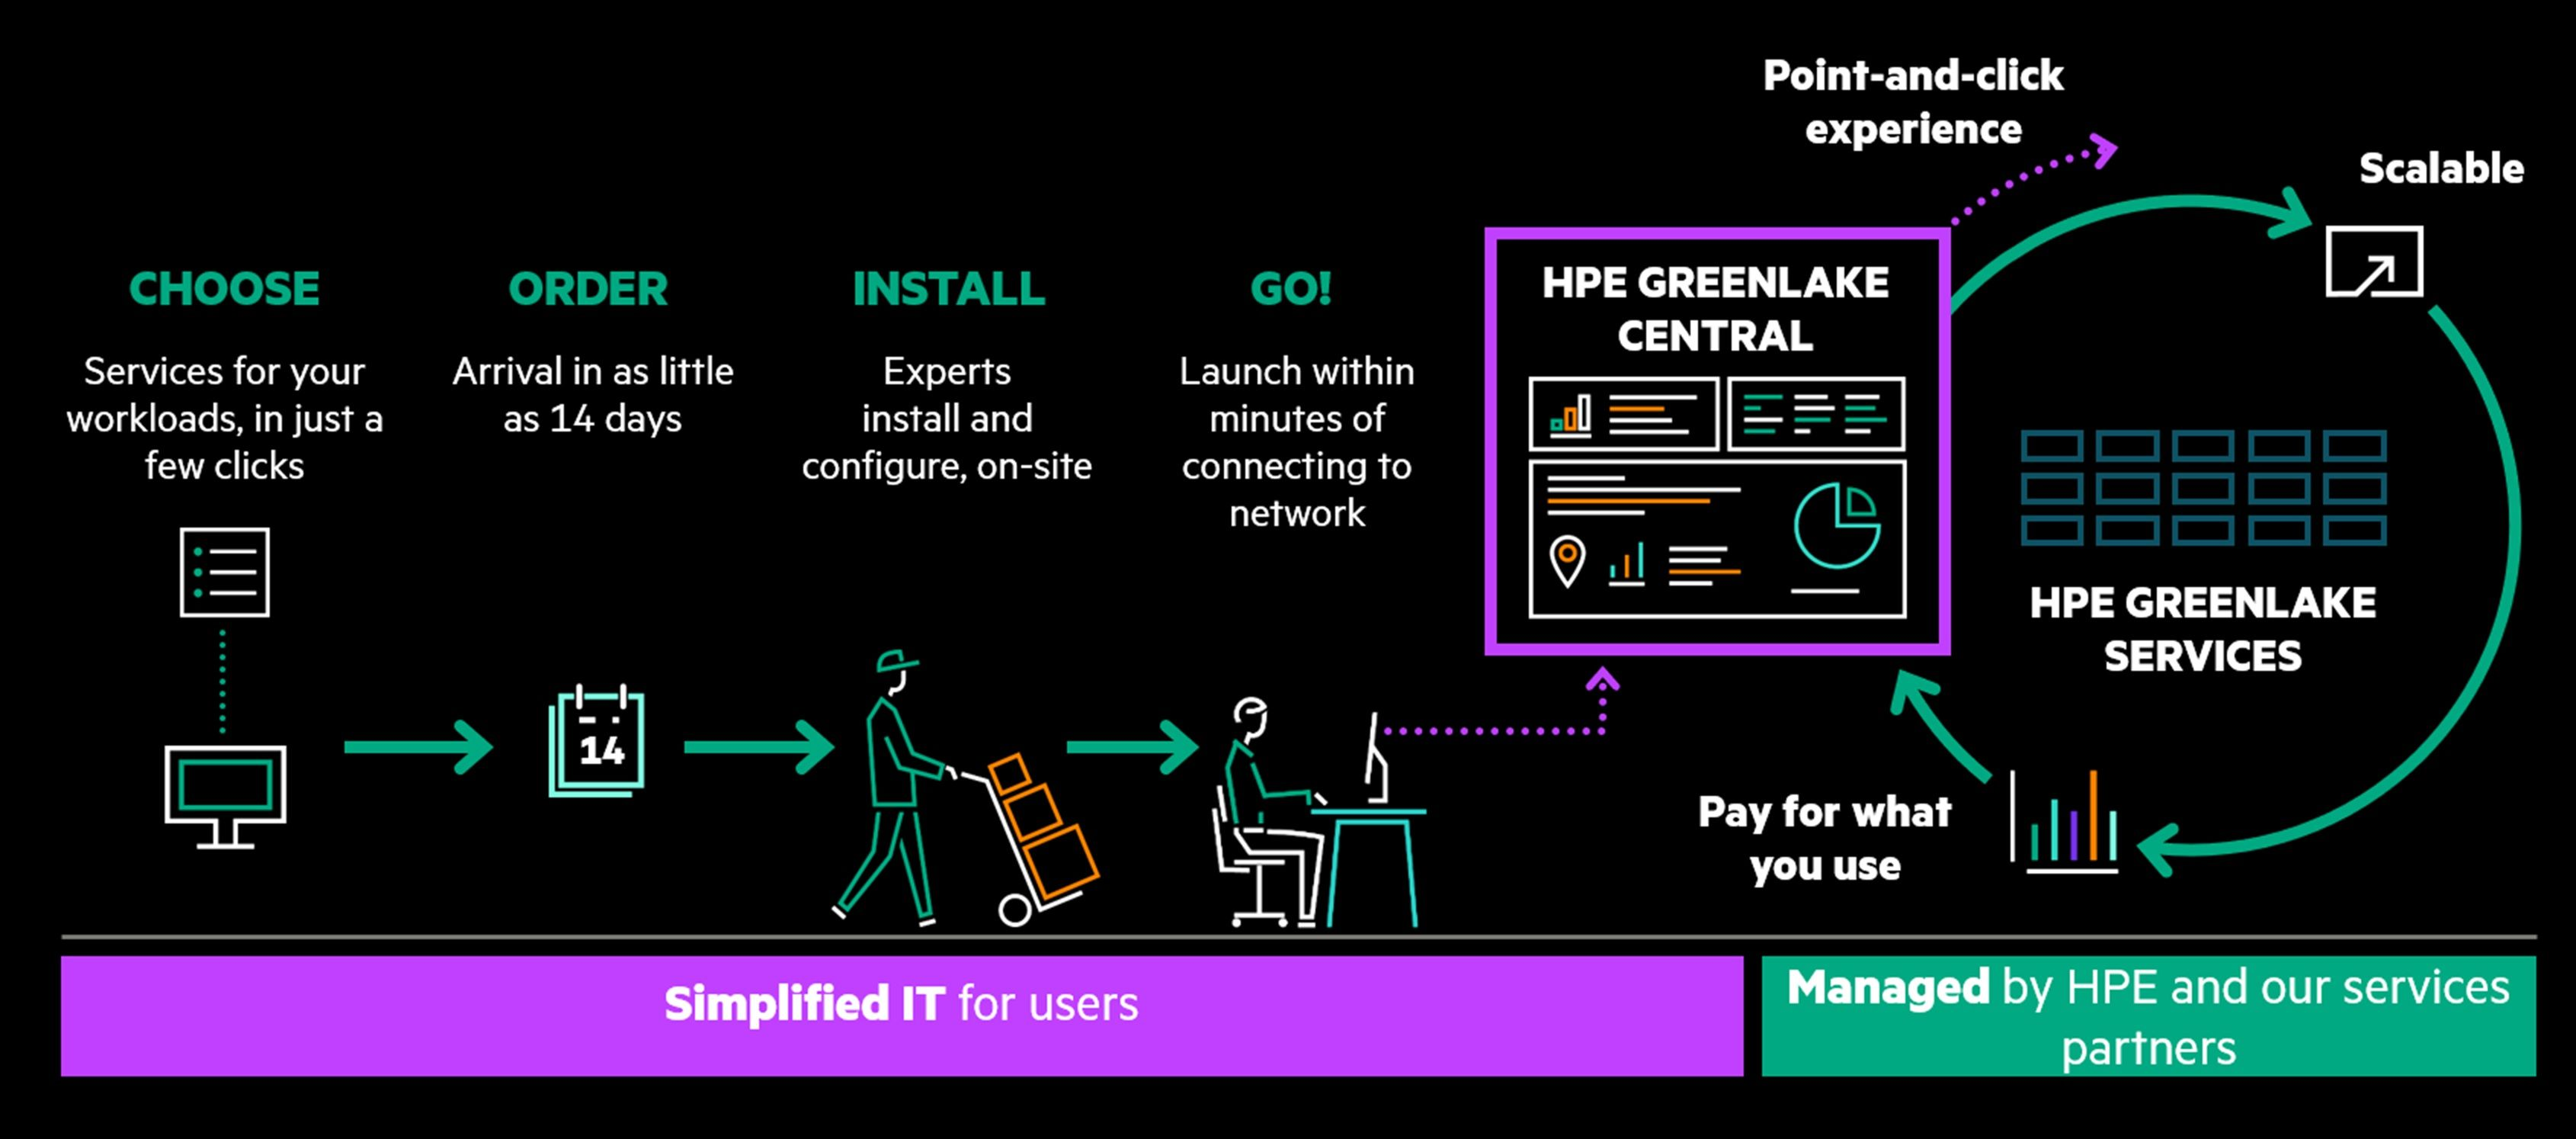 prozess_hpe-greenlake-cloud-services.jpg